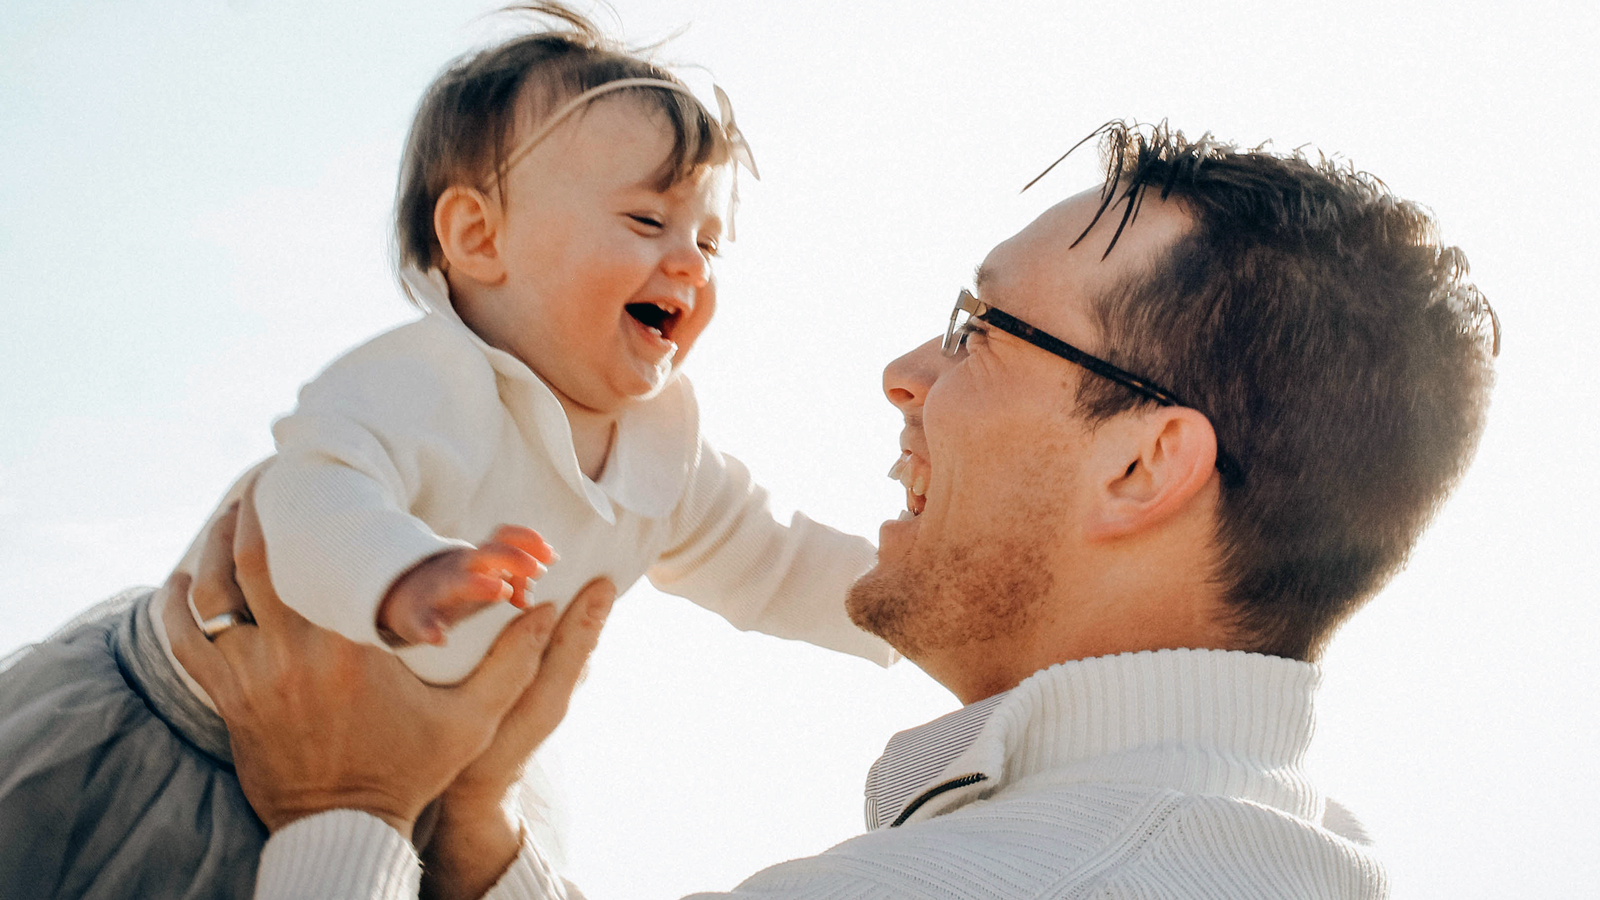 What you should know about paternity leave and how to approach your boss about it